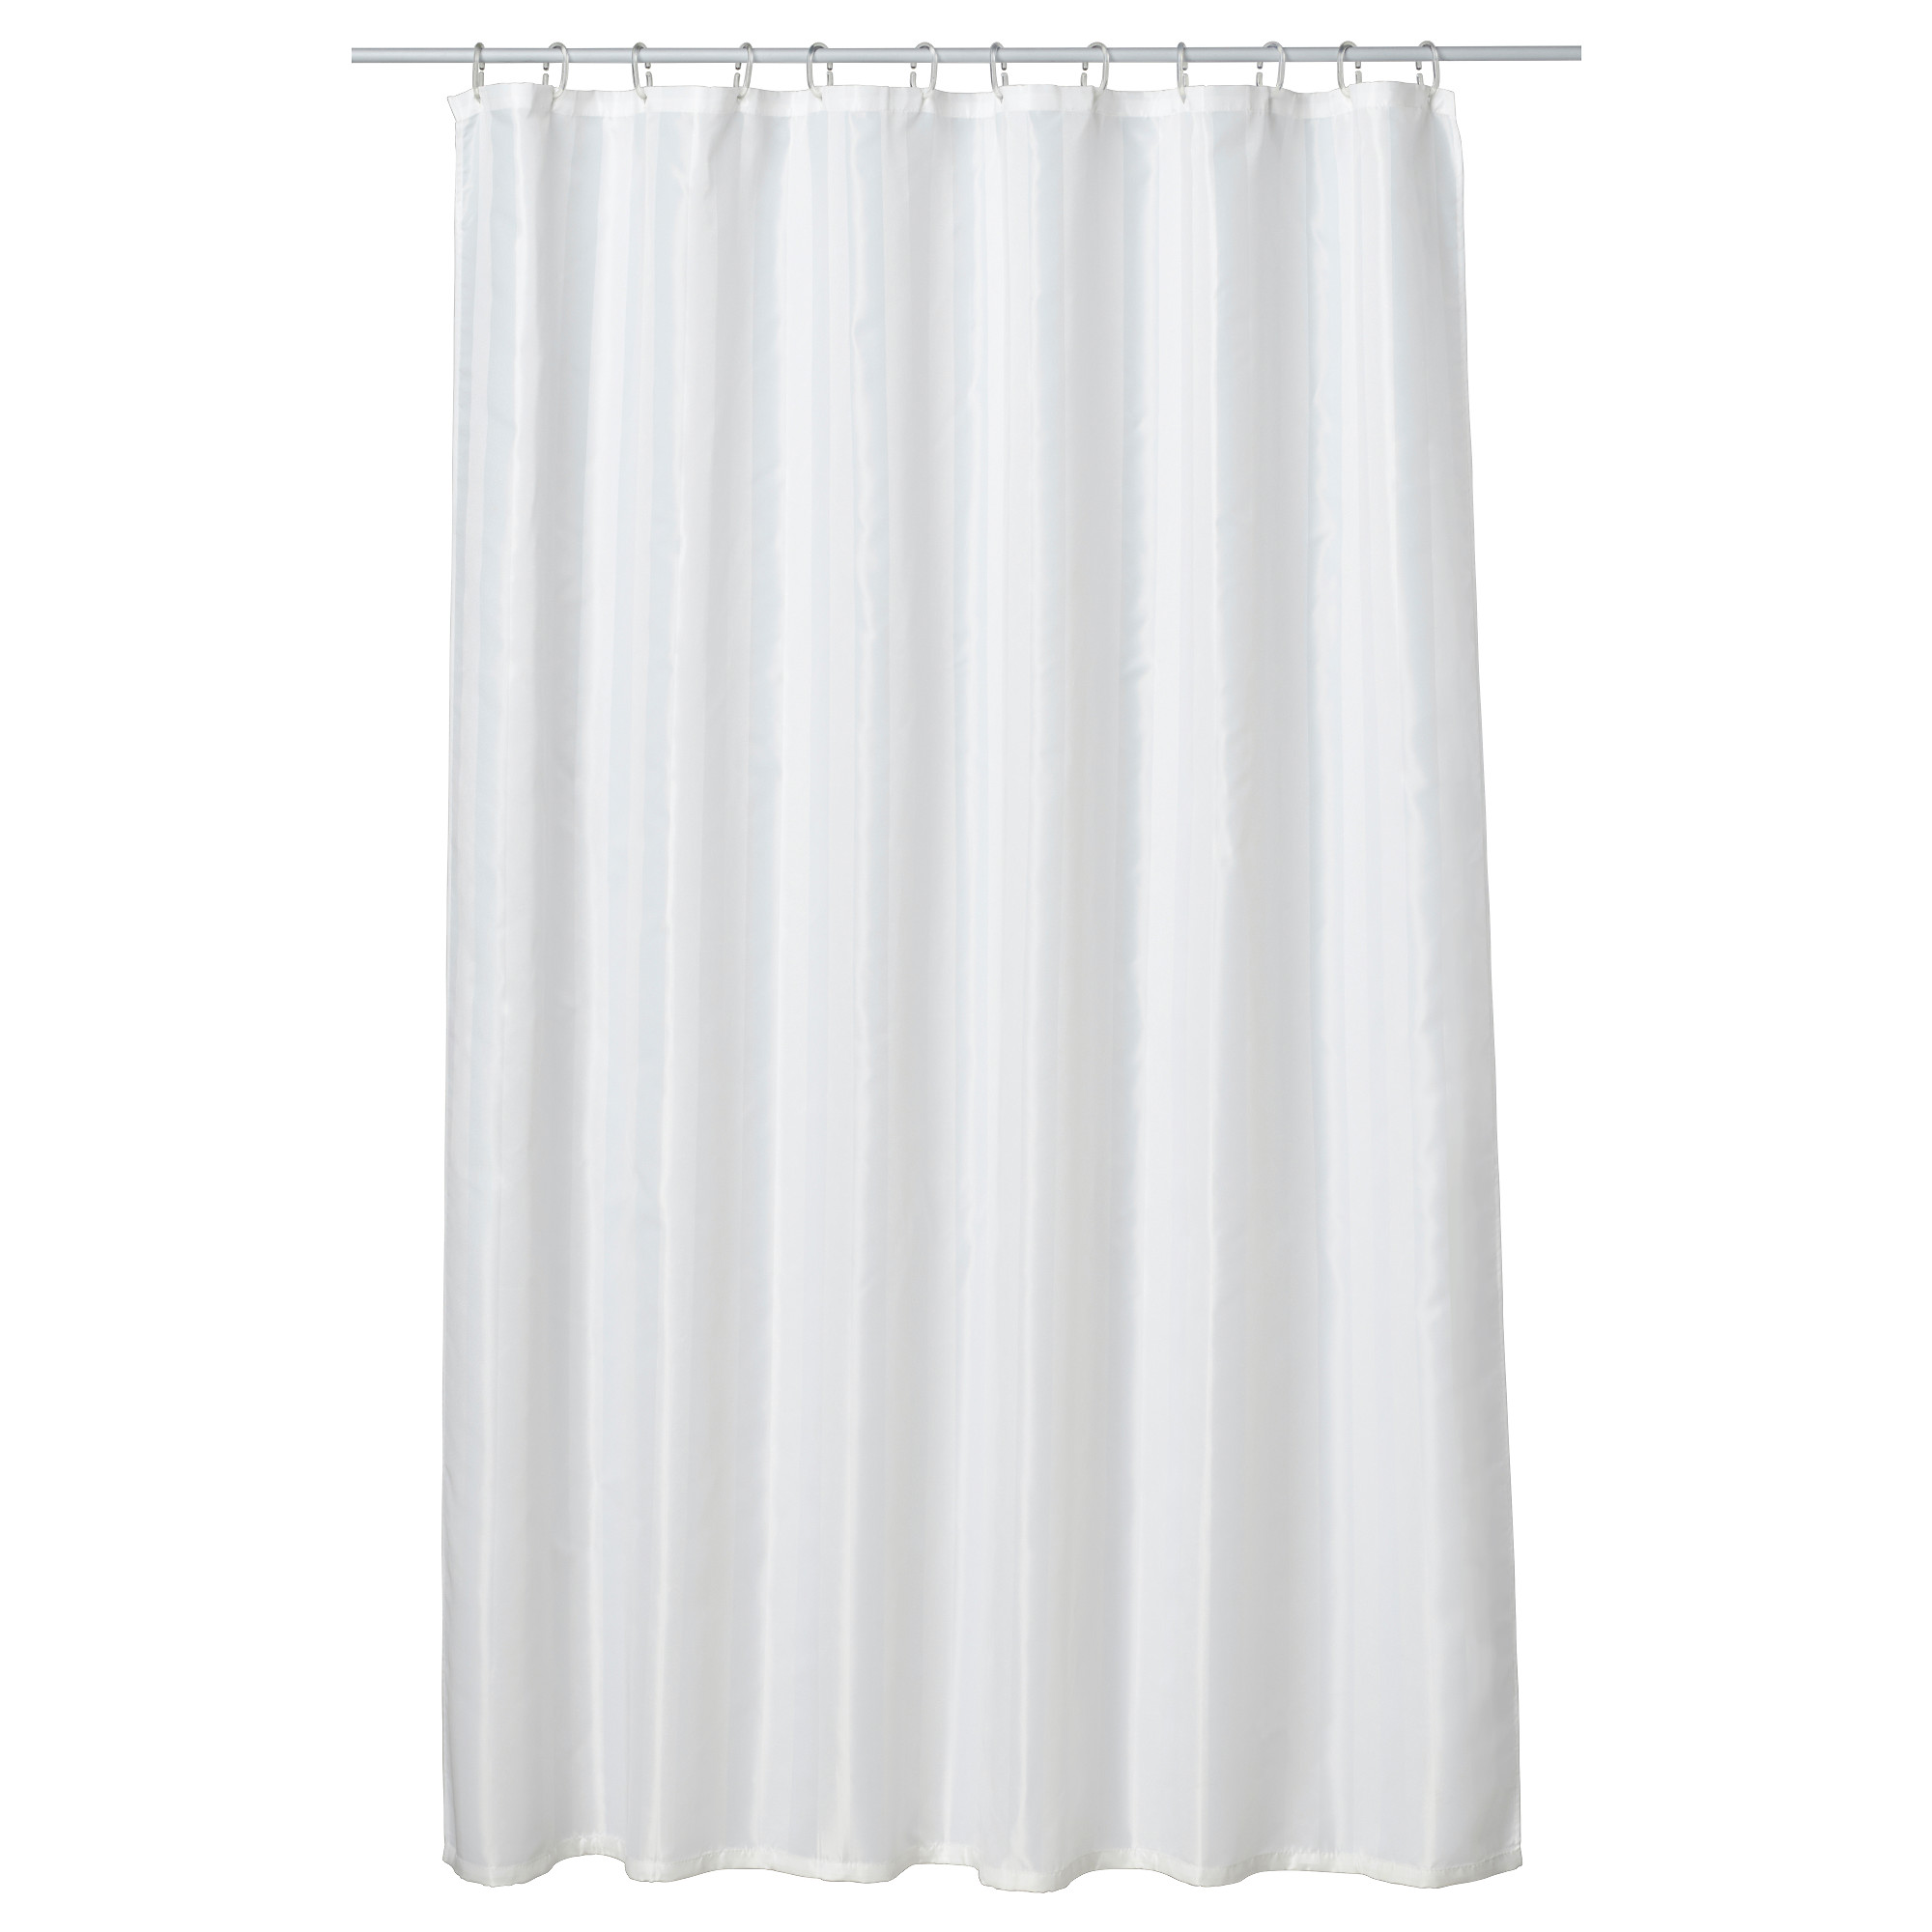 Ikea Shower Curtain for Best Your Bathroom Decoration: Ikea Shower Curtain | Shower Curtain Rail Ikea | Ikea Shower Curtain Rail